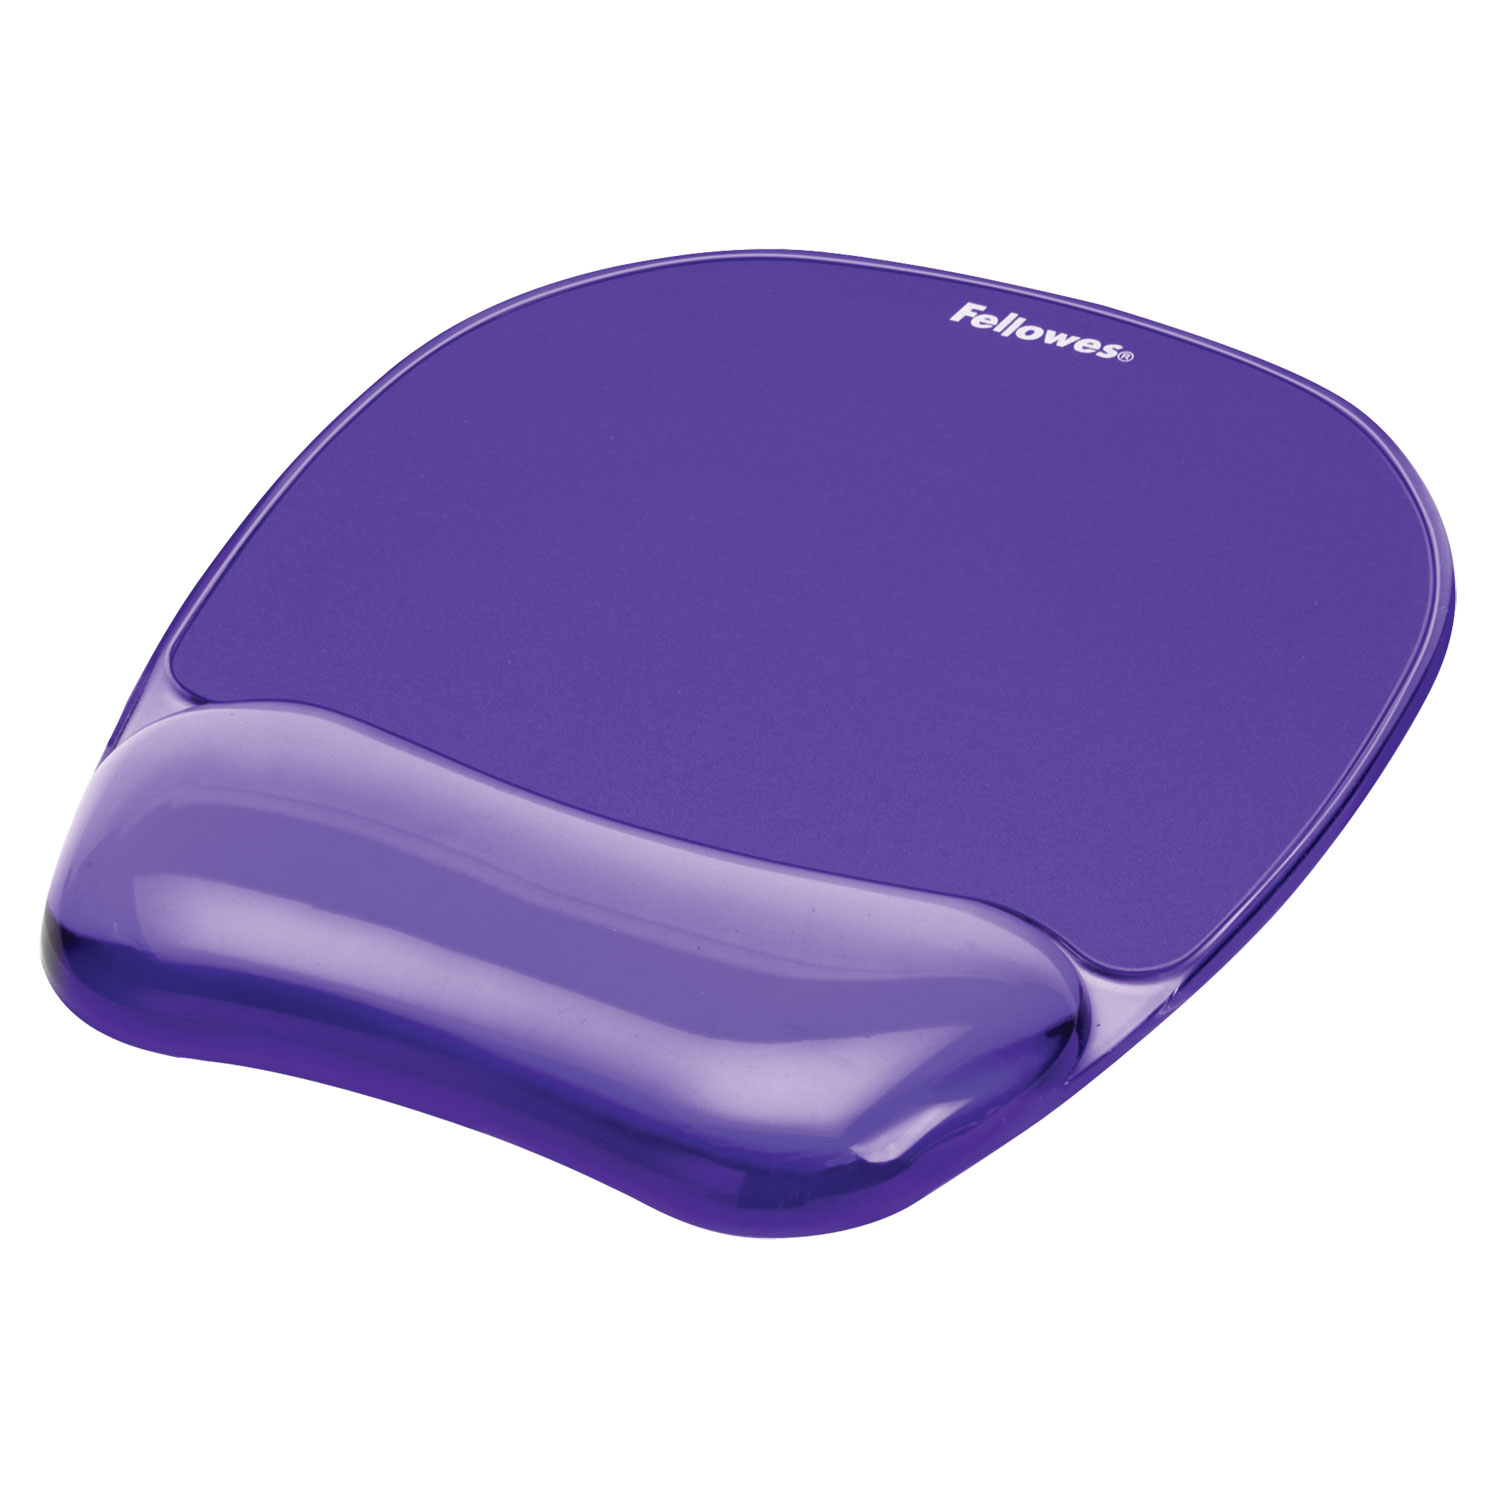 "Gel Crystals Mouse Pad with Wrist Rest, 7.87"" x 9.18"", Purple"